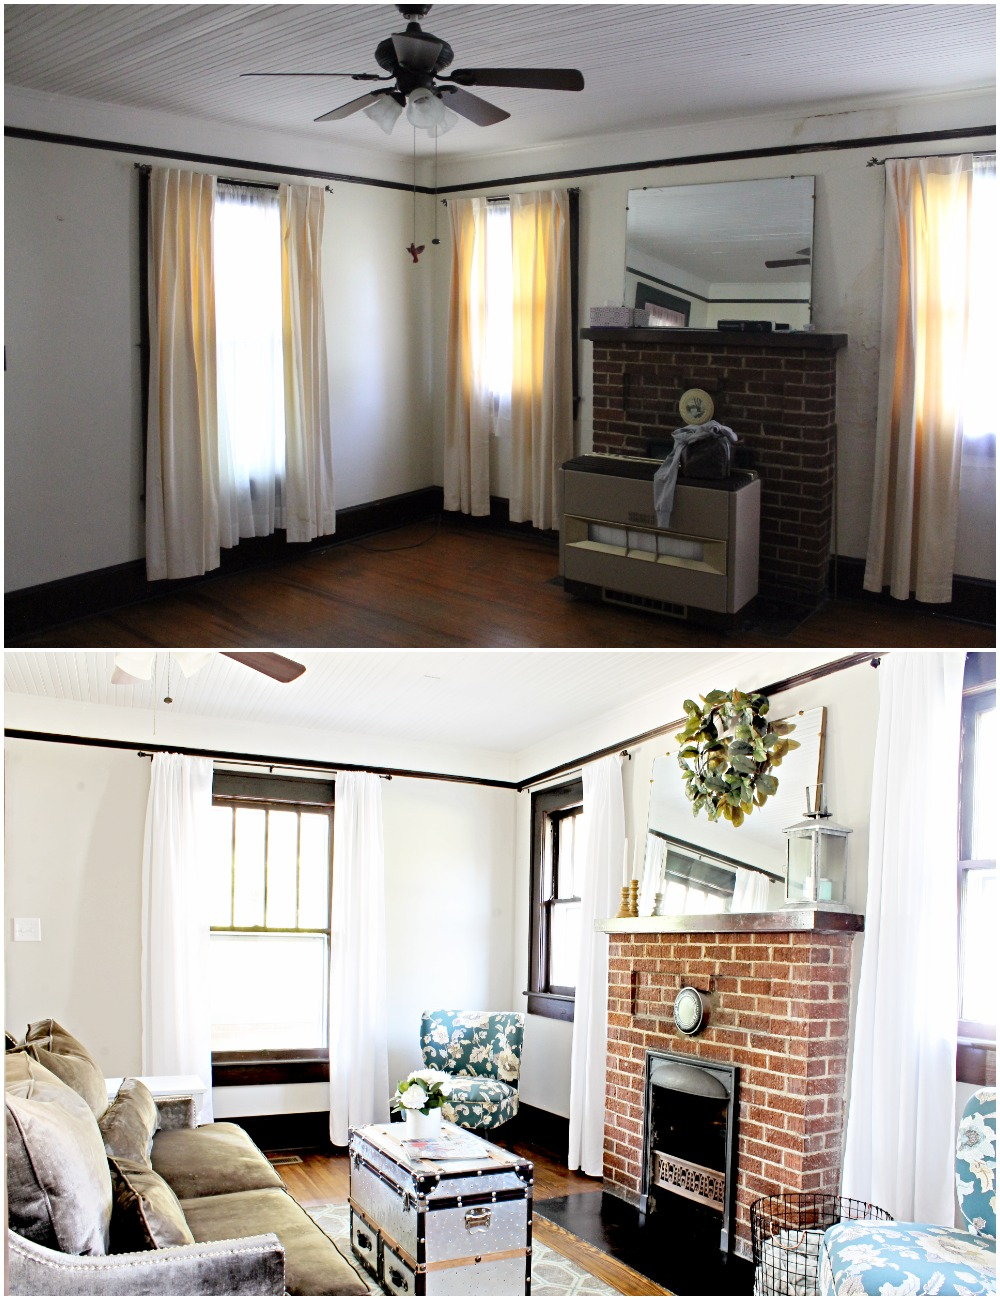 House Flipping Before and Afters - Living Room Budget Renovation Remodel, Wood Trim Paint Colors - Sherwin Williams Repose Gray (2).jpg